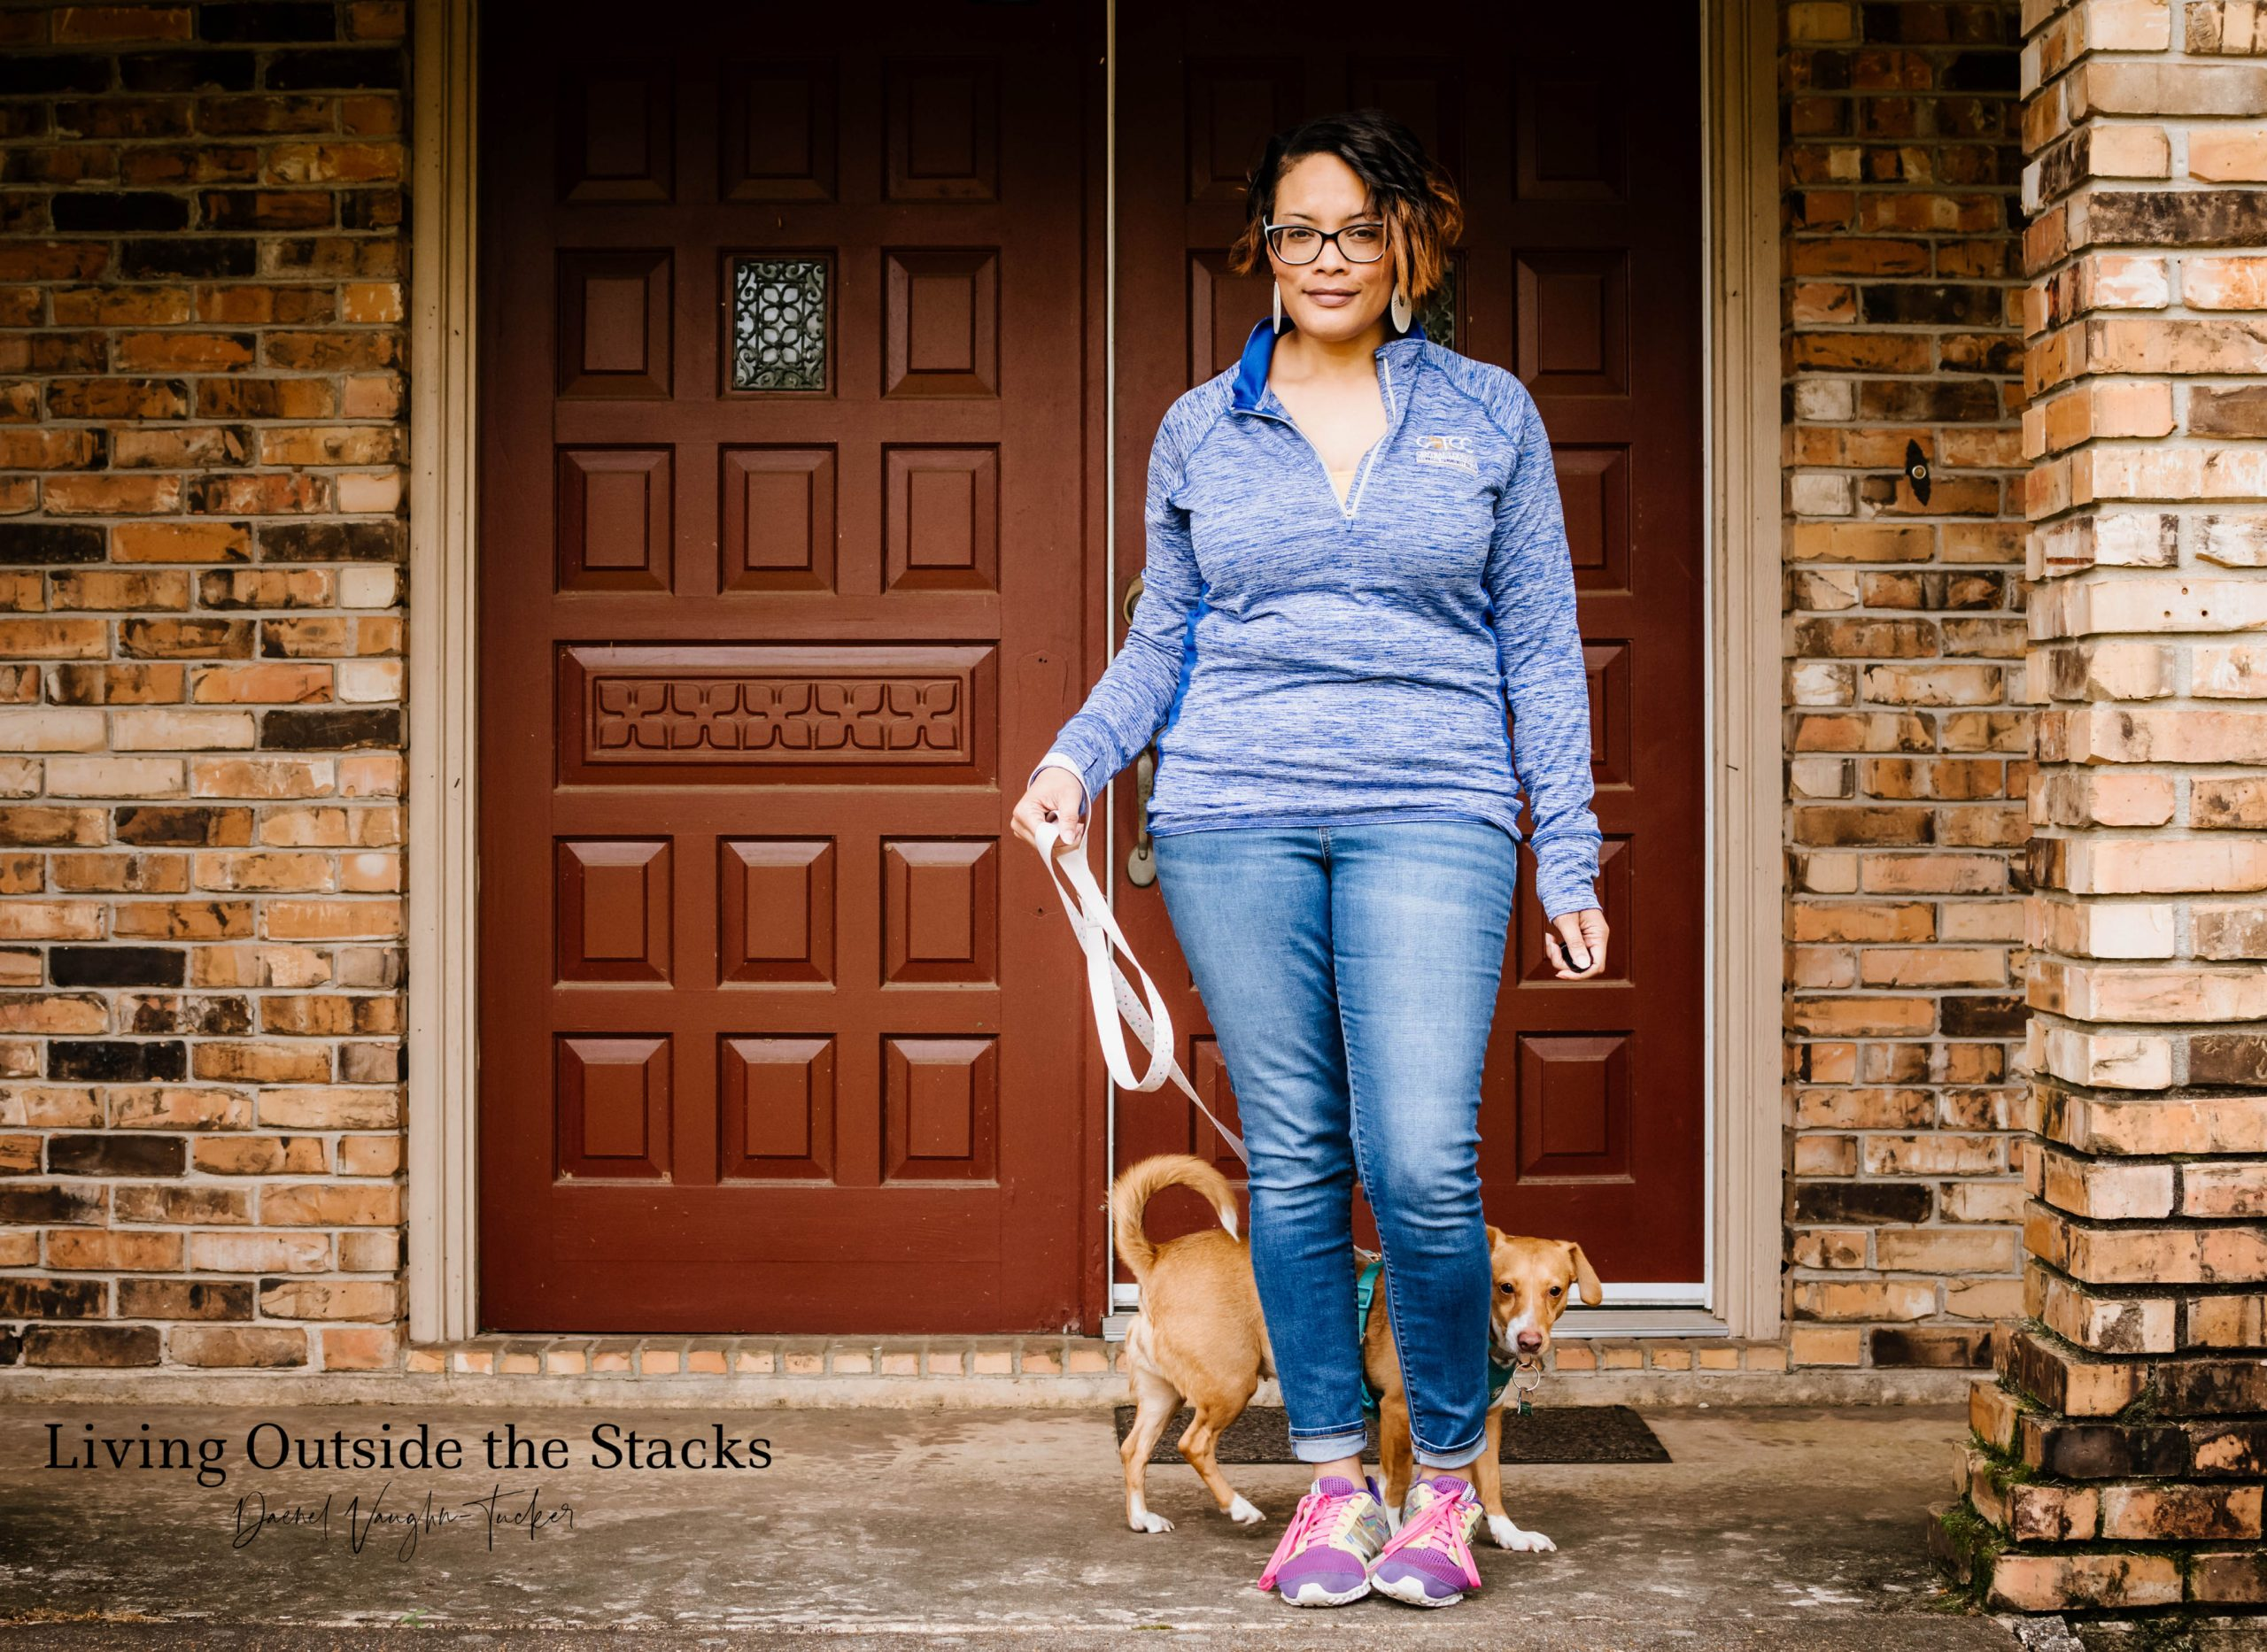 Daenel T {living outside the stacks} 3_30 #OnMyFrontPorch